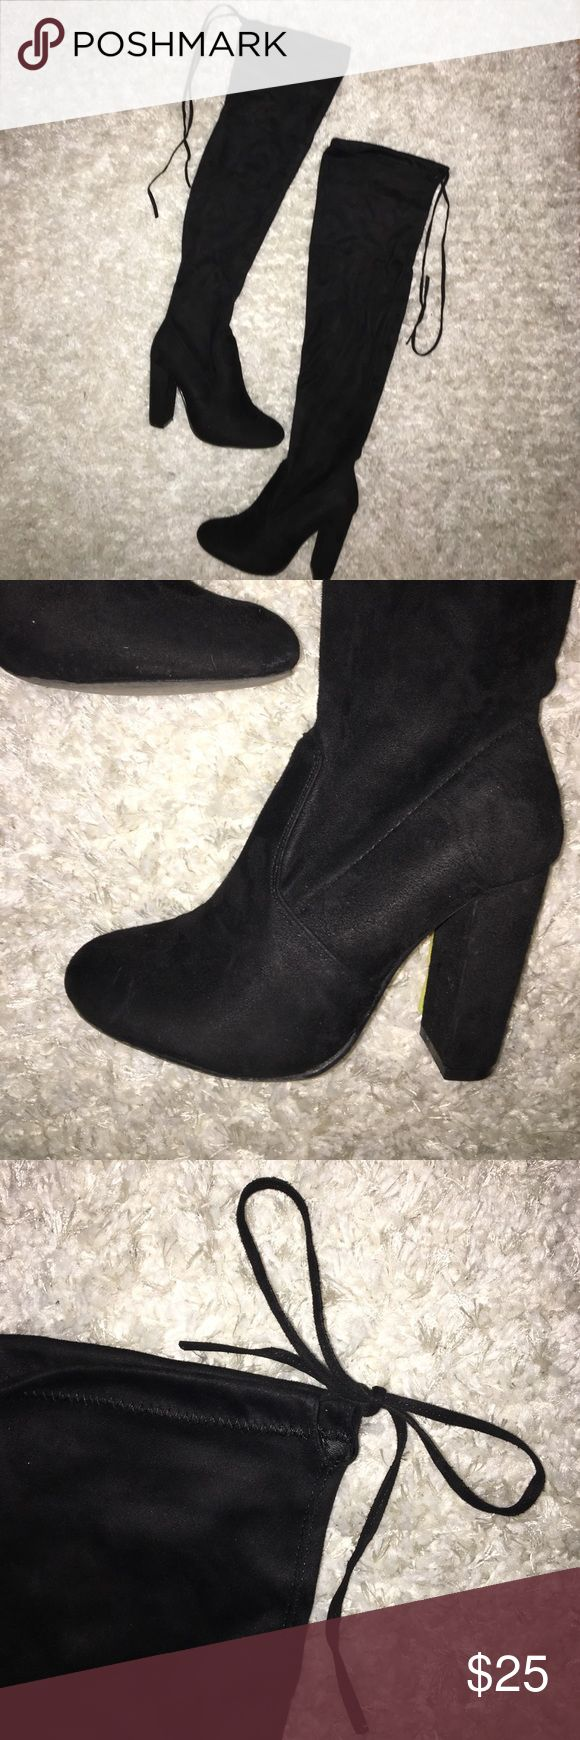 black suede knee high boots black suede knee high boots with ties behind the knees No Doubt Shoes Over the Knee Boots